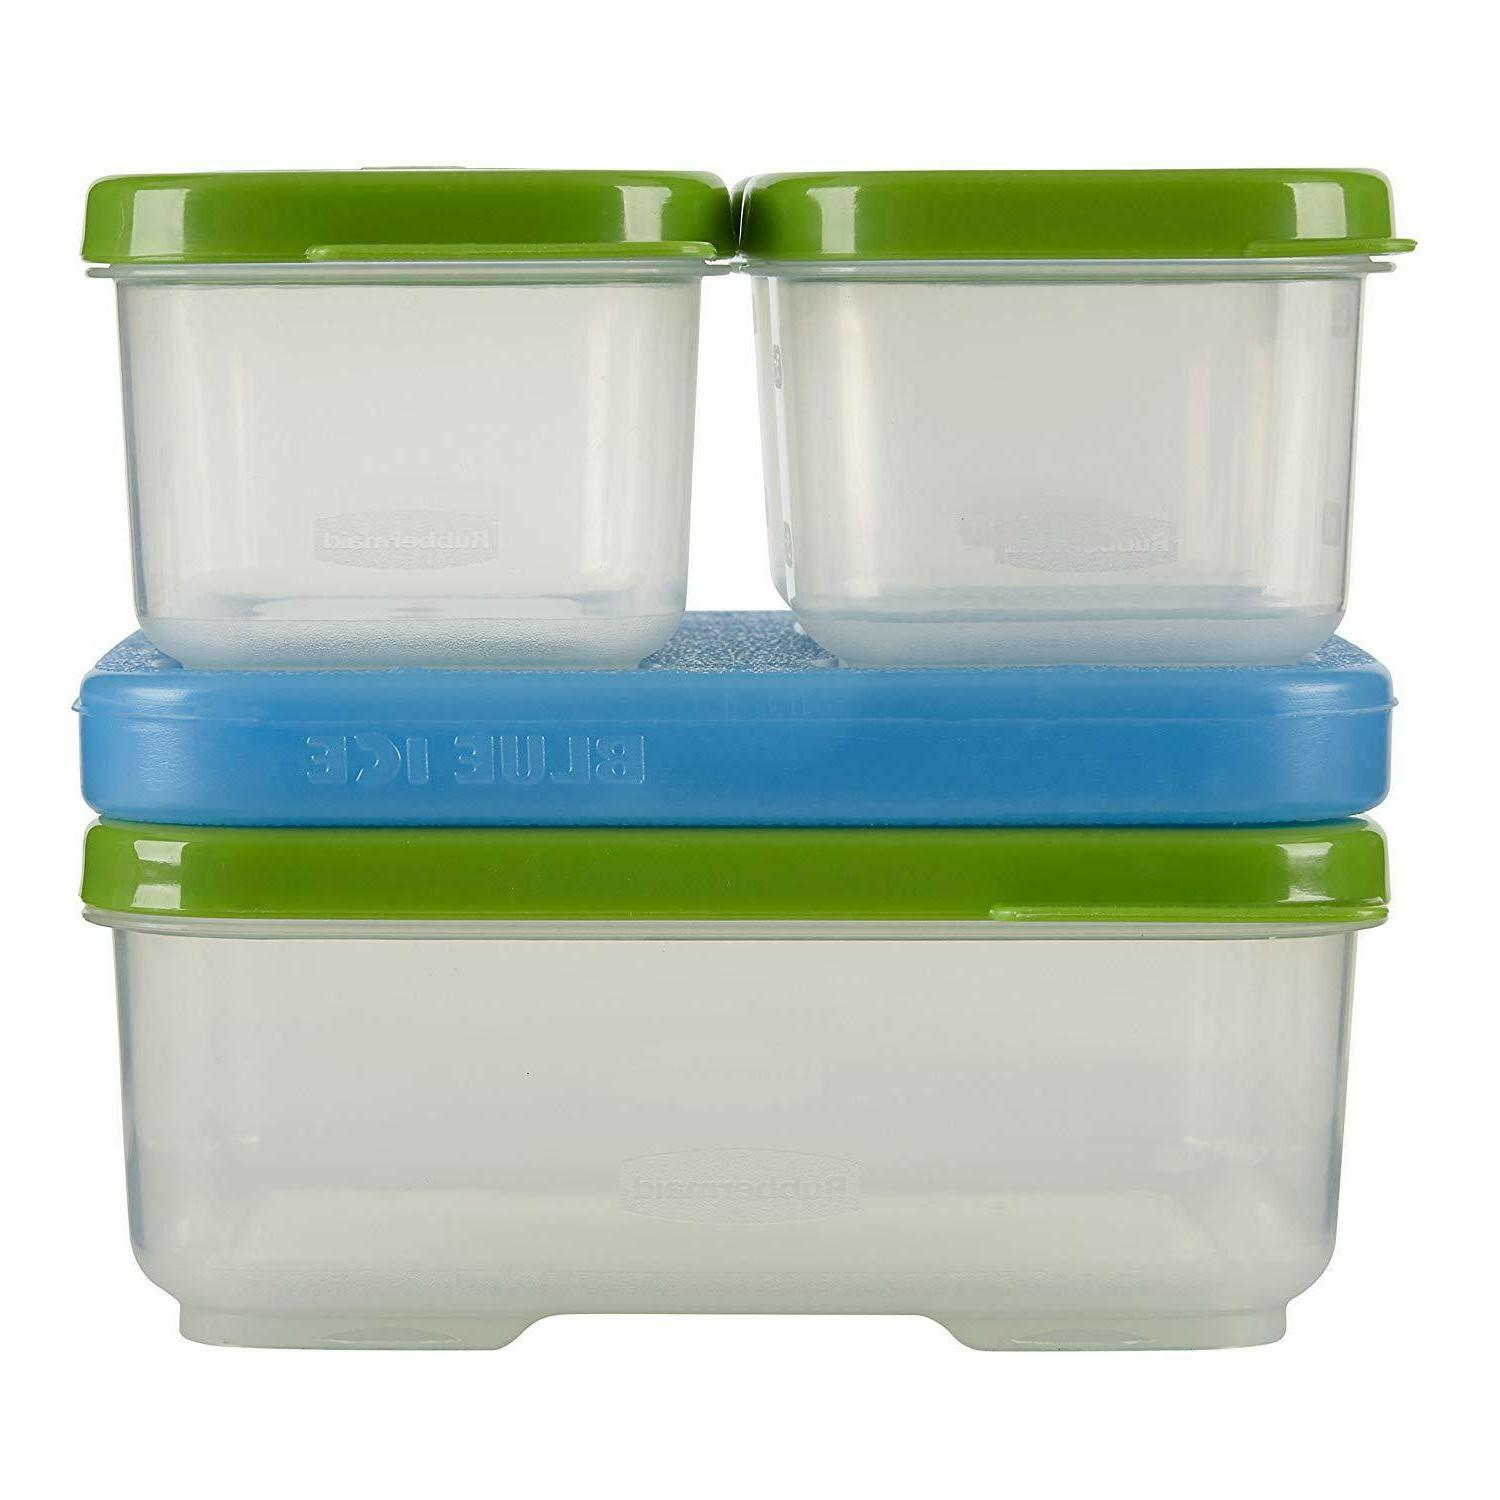 Rubbermaid Durable Lunch Containers